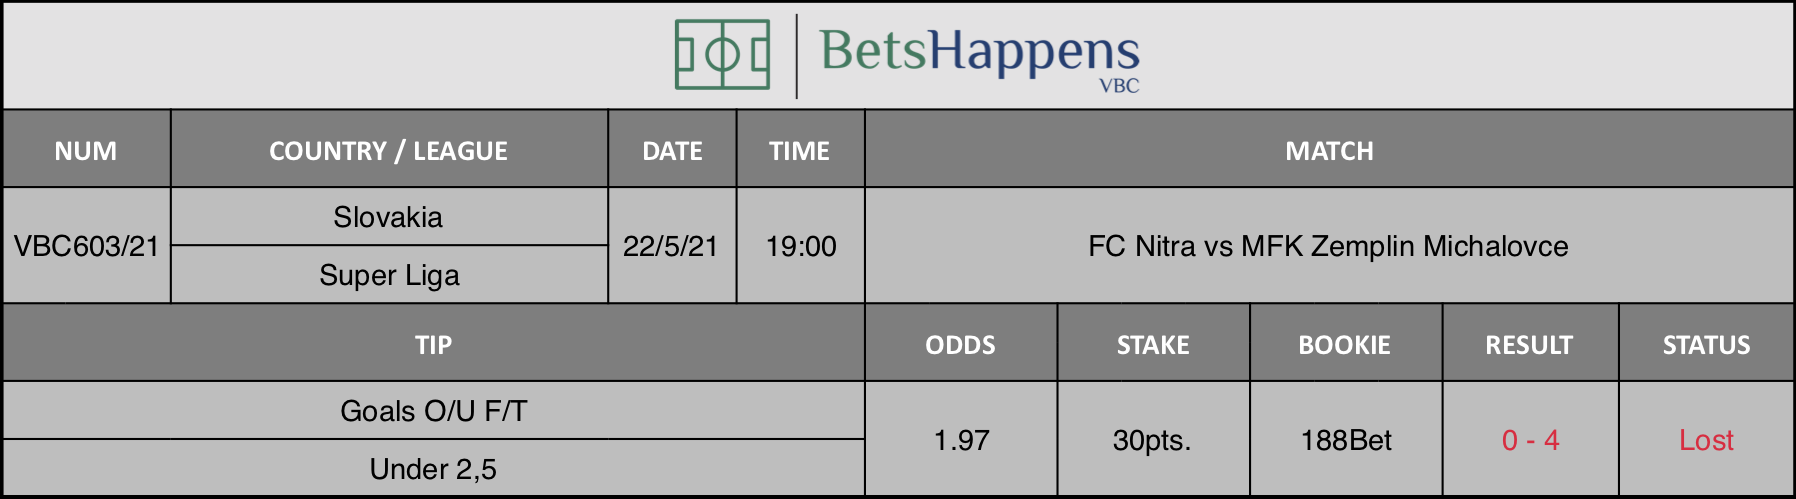 Results of our tip for the FC Nitra vs MFK Zemplin Michalovce match where Goals O/U F/T Under 2,5 is recommended.